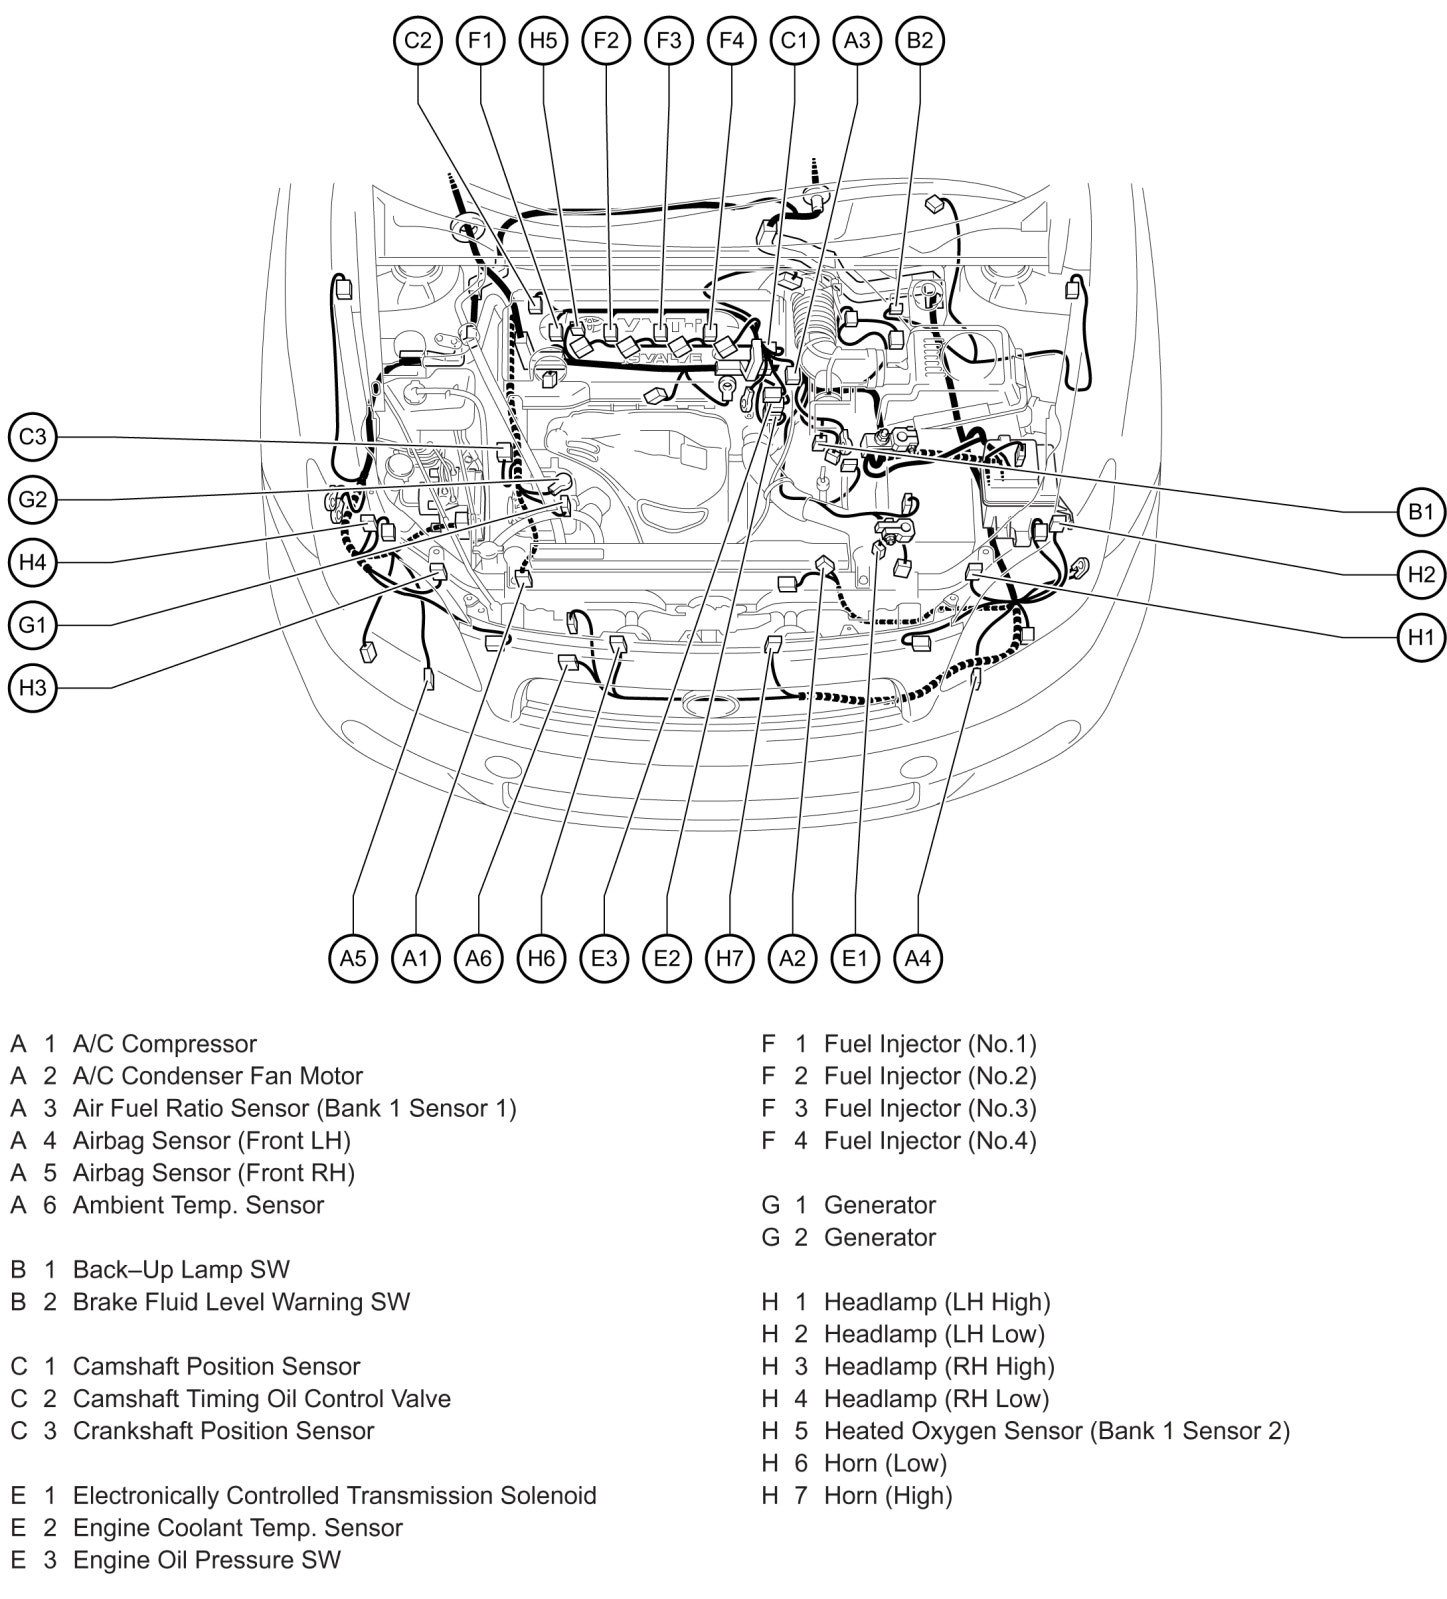 Crown Joystick Wiring Diagram